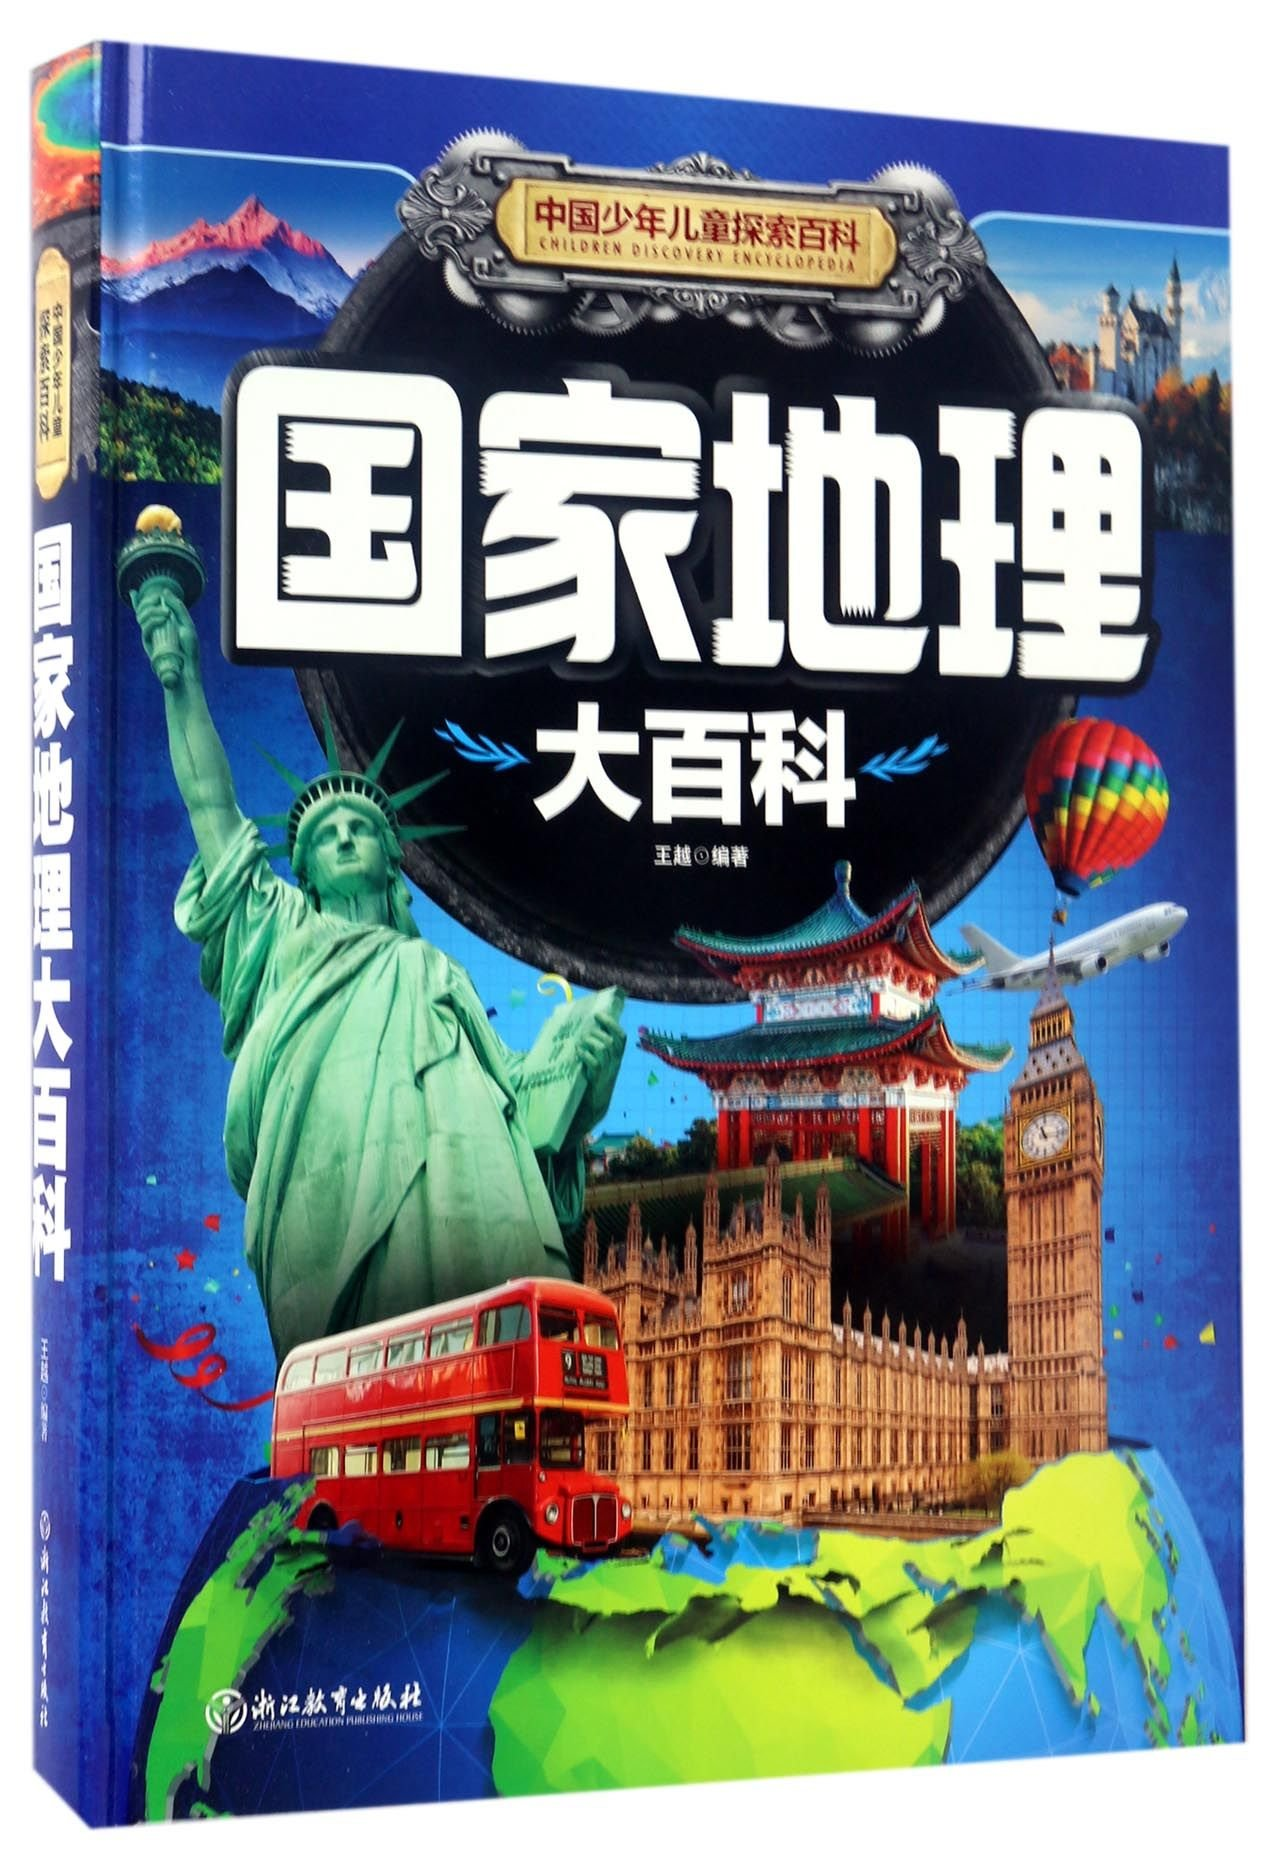 National Geographic Encyclopedia(Hardcover) (Chinese Edition) PDF